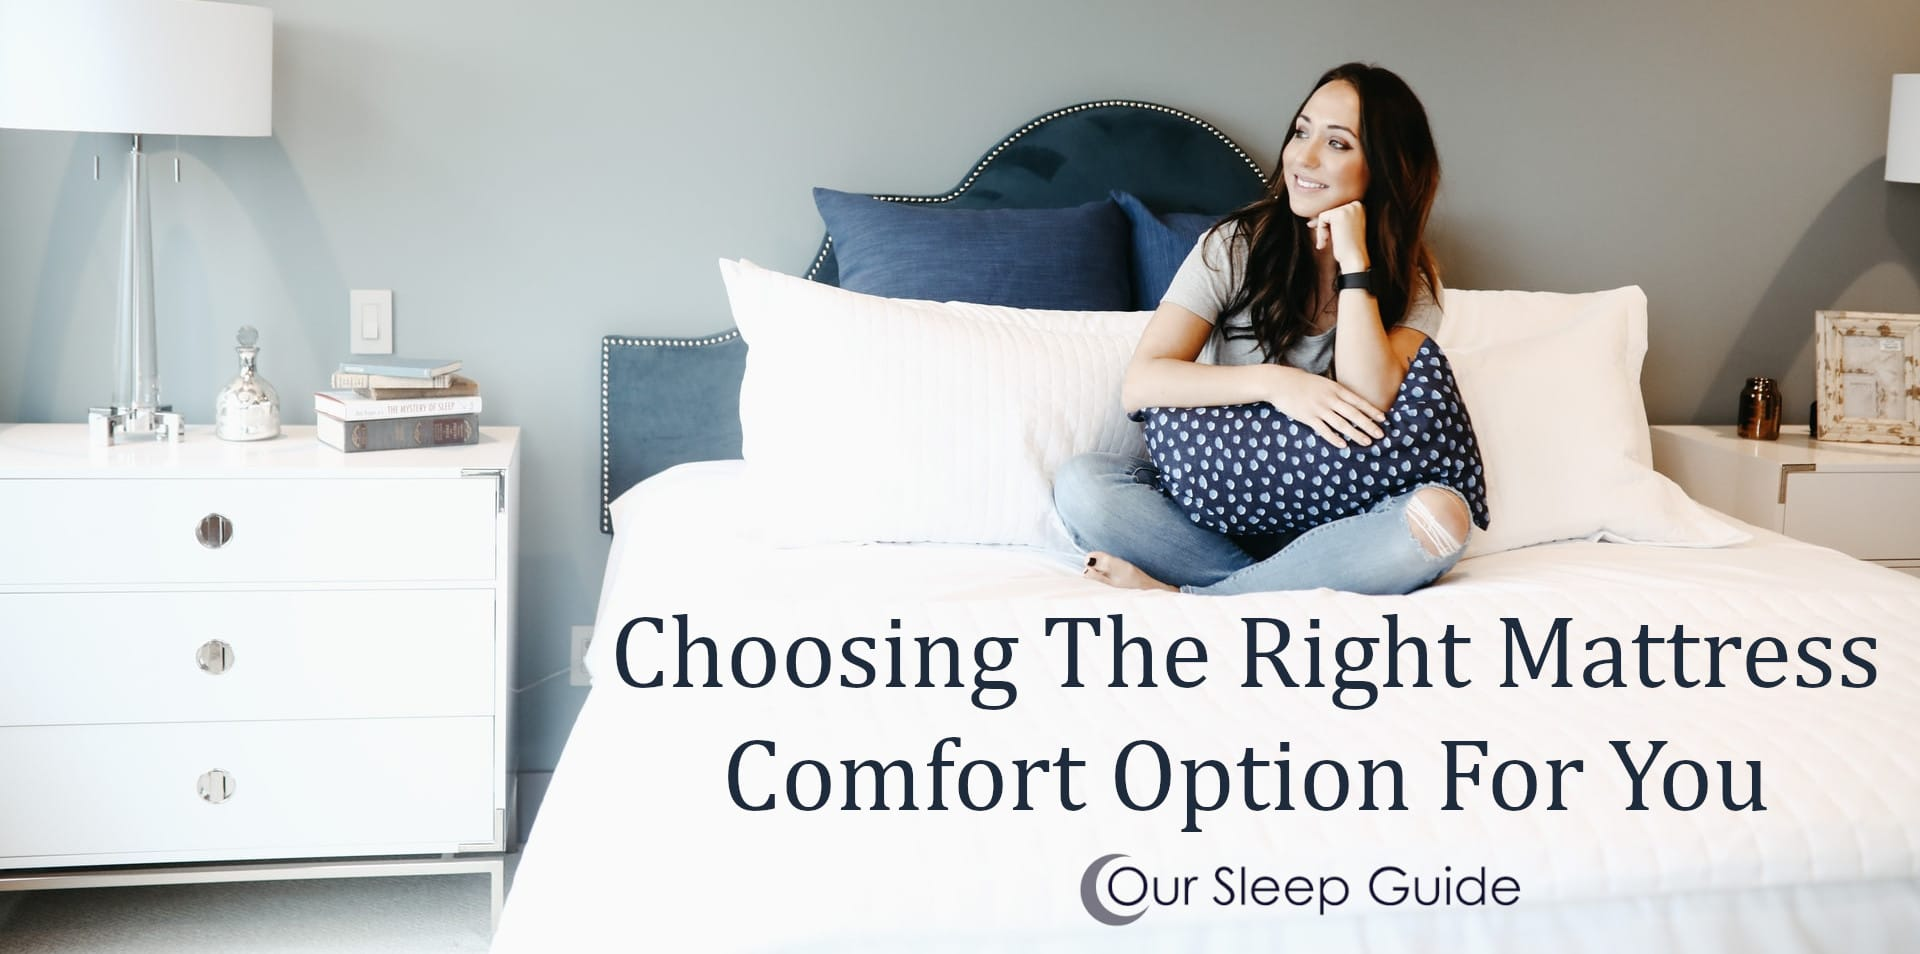 How To Choose The Right Mattress Comfort